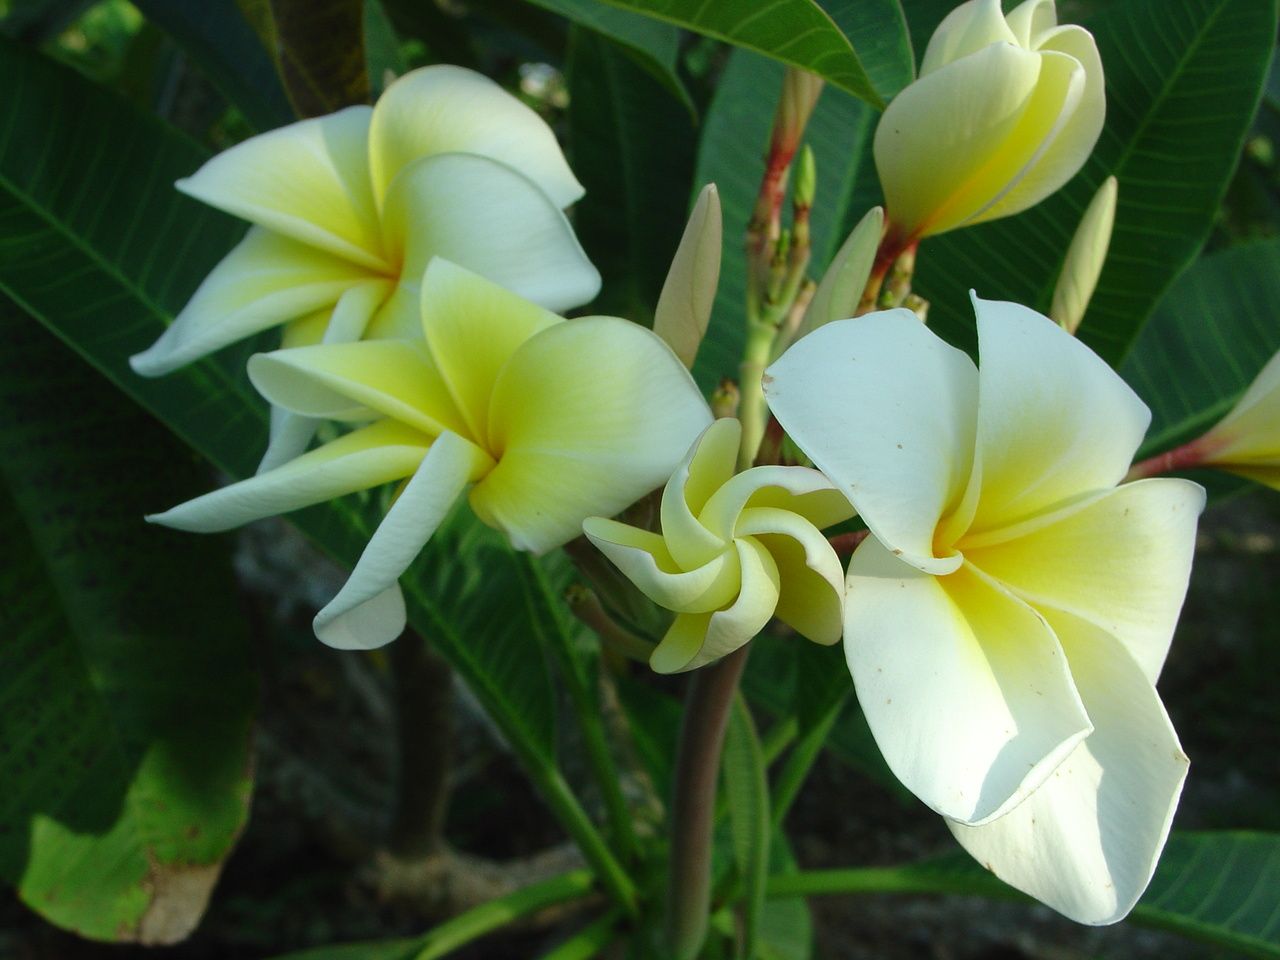 Naples Yellow FCN (rooted) Plumeria Questions & Answers